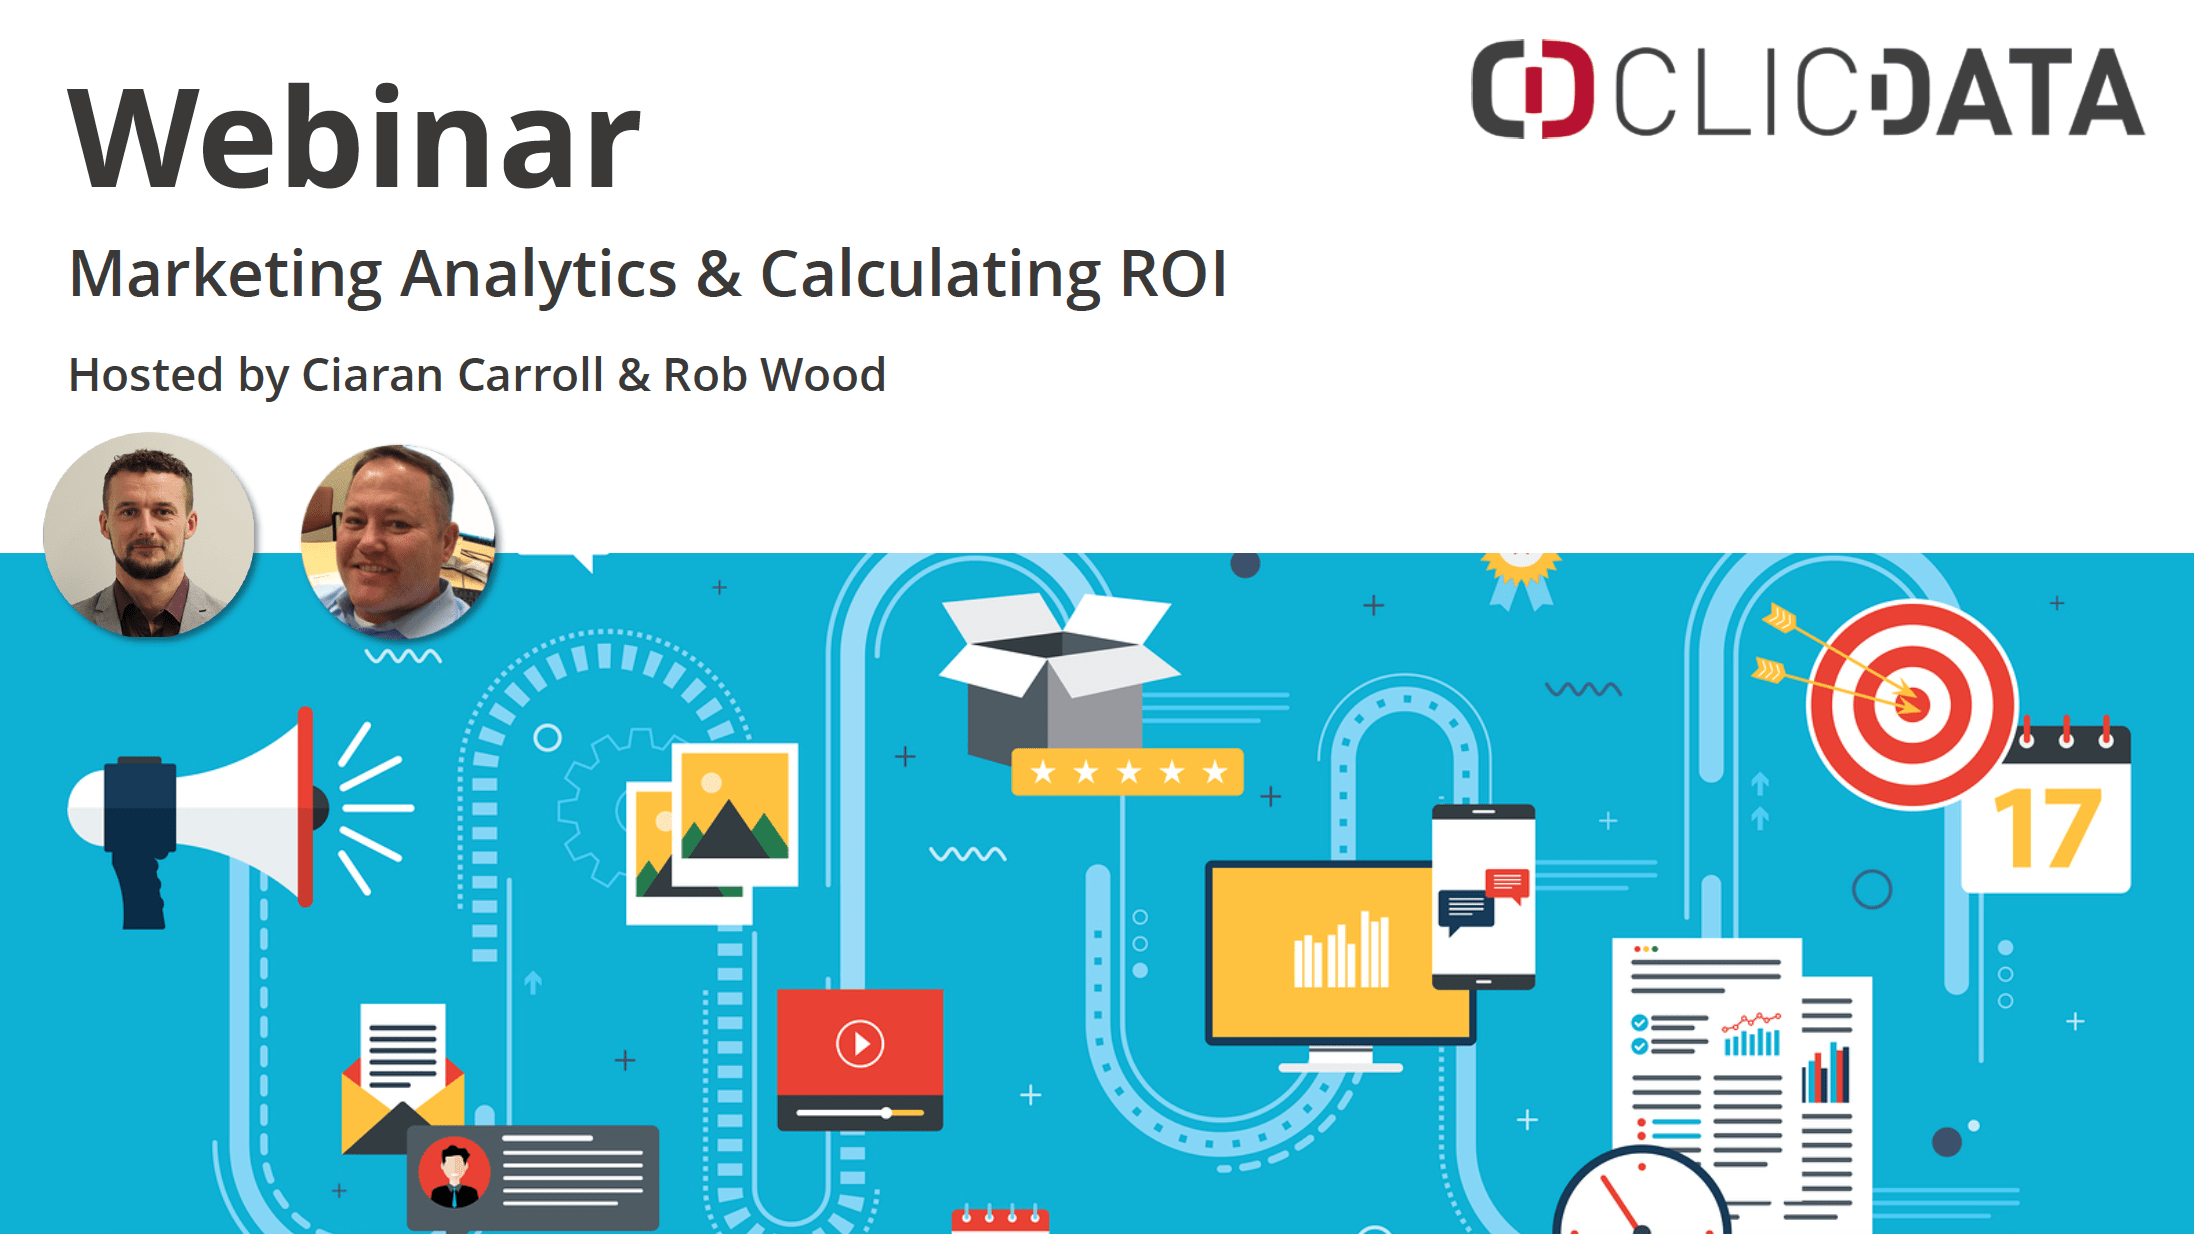 webinar-marketing-analytics-roi